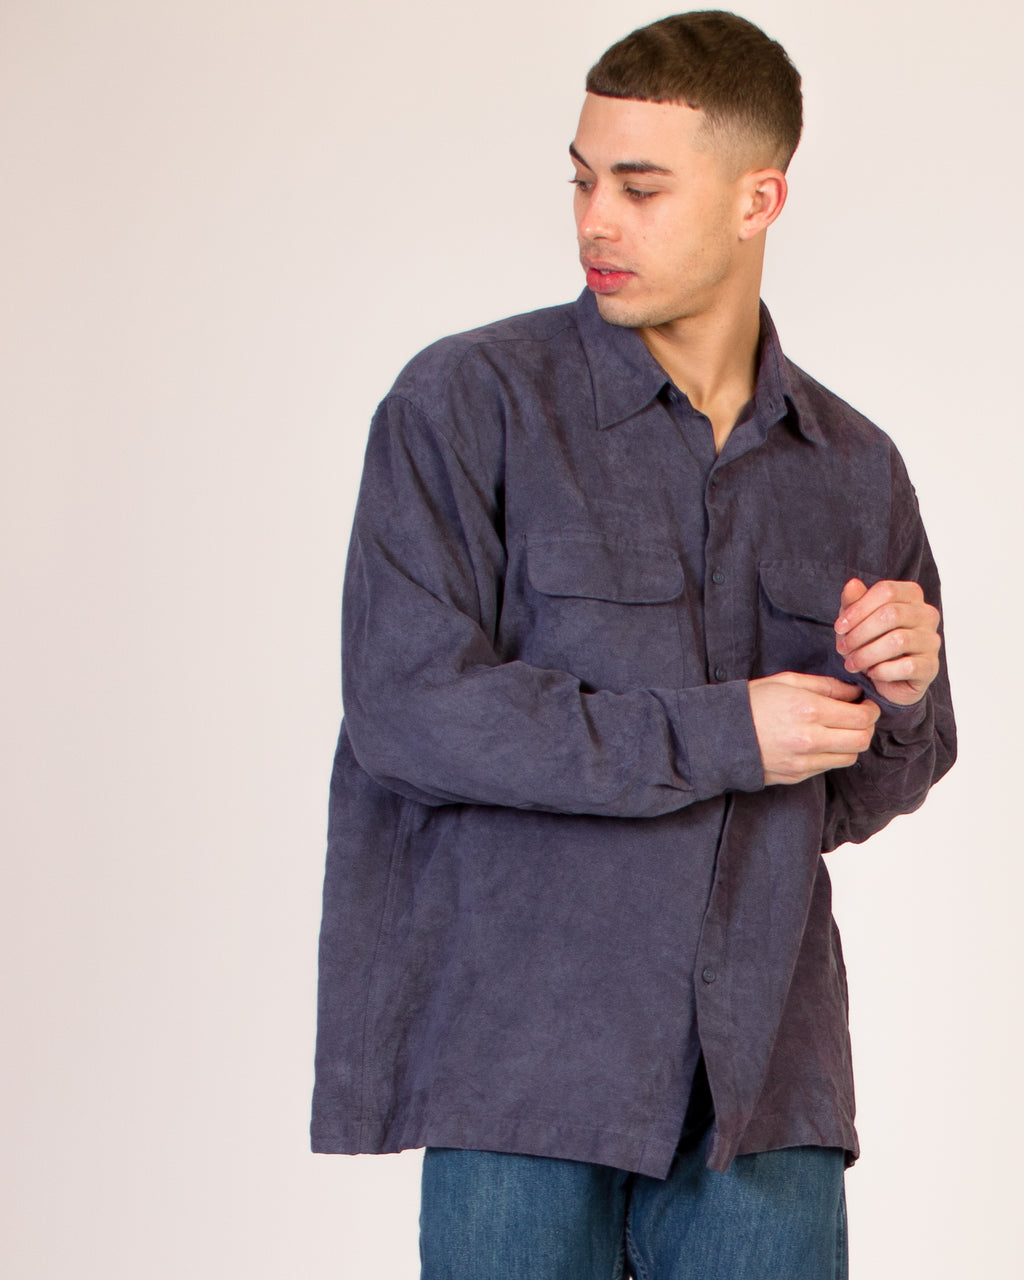 NAVY BLUE SUEDE SHIRT